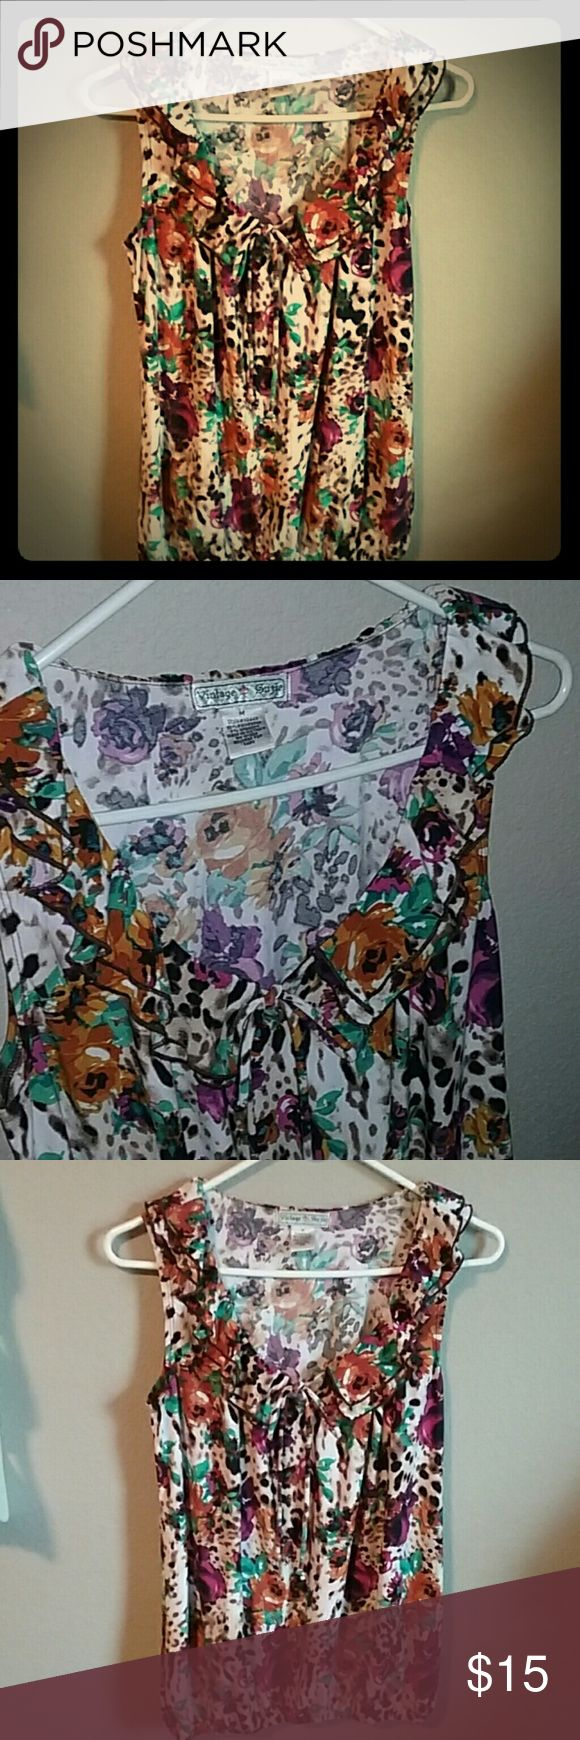 """Great Sleeveless Soft Like New Shirt Adorable!  Like new! Great floral, animal print pattern with a tie at the neckline and a gathered waist. Cute ruffles around the neckline;)  Size Medium! Almost tunic length! 27"""" from shoulder to hem.  Smoke and pet free! Feel free to make offers! Thank you! xo Vintage Suzie Tops Blouses"""